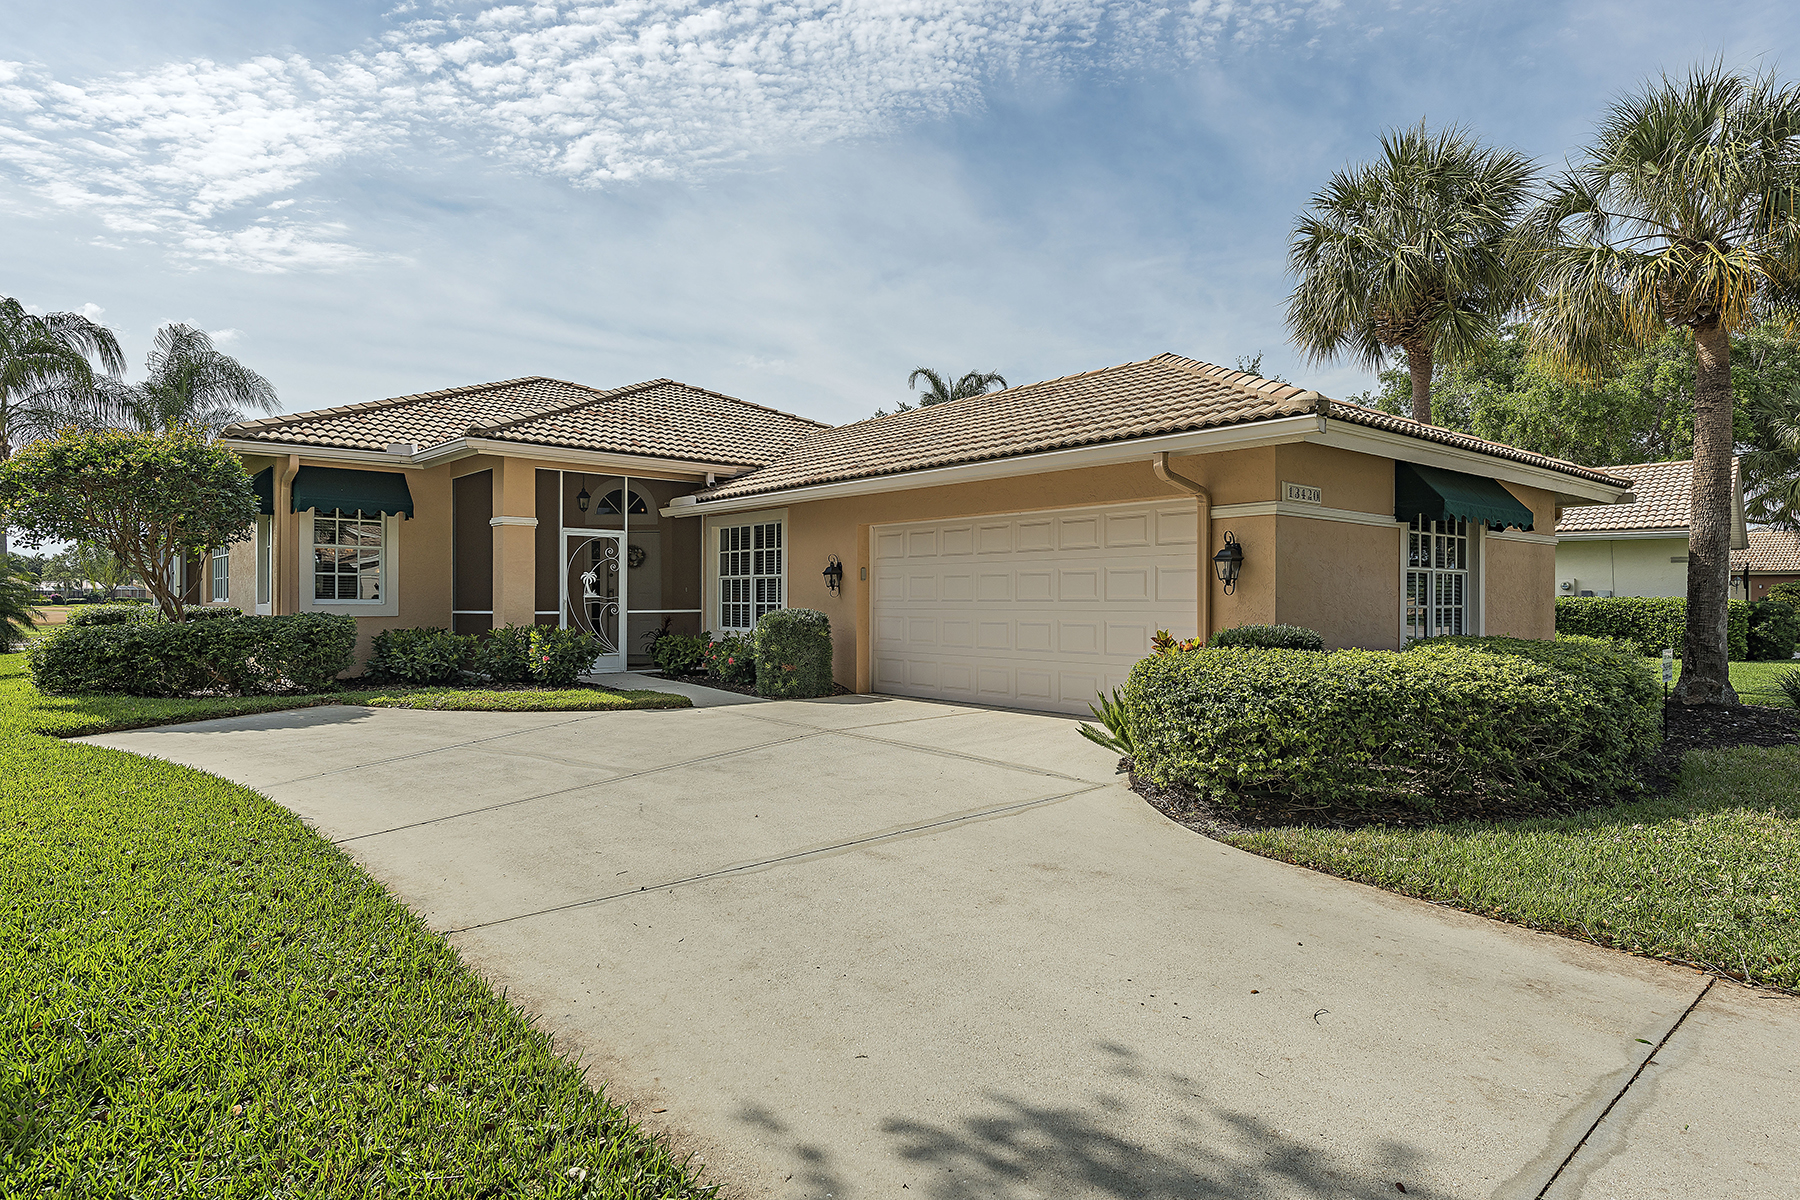 Maison unifamiliale pour l Vente à WORTHINGTON 13420 Bridgeford Ave, Bonita Springs, Florida 34135 États-Unis